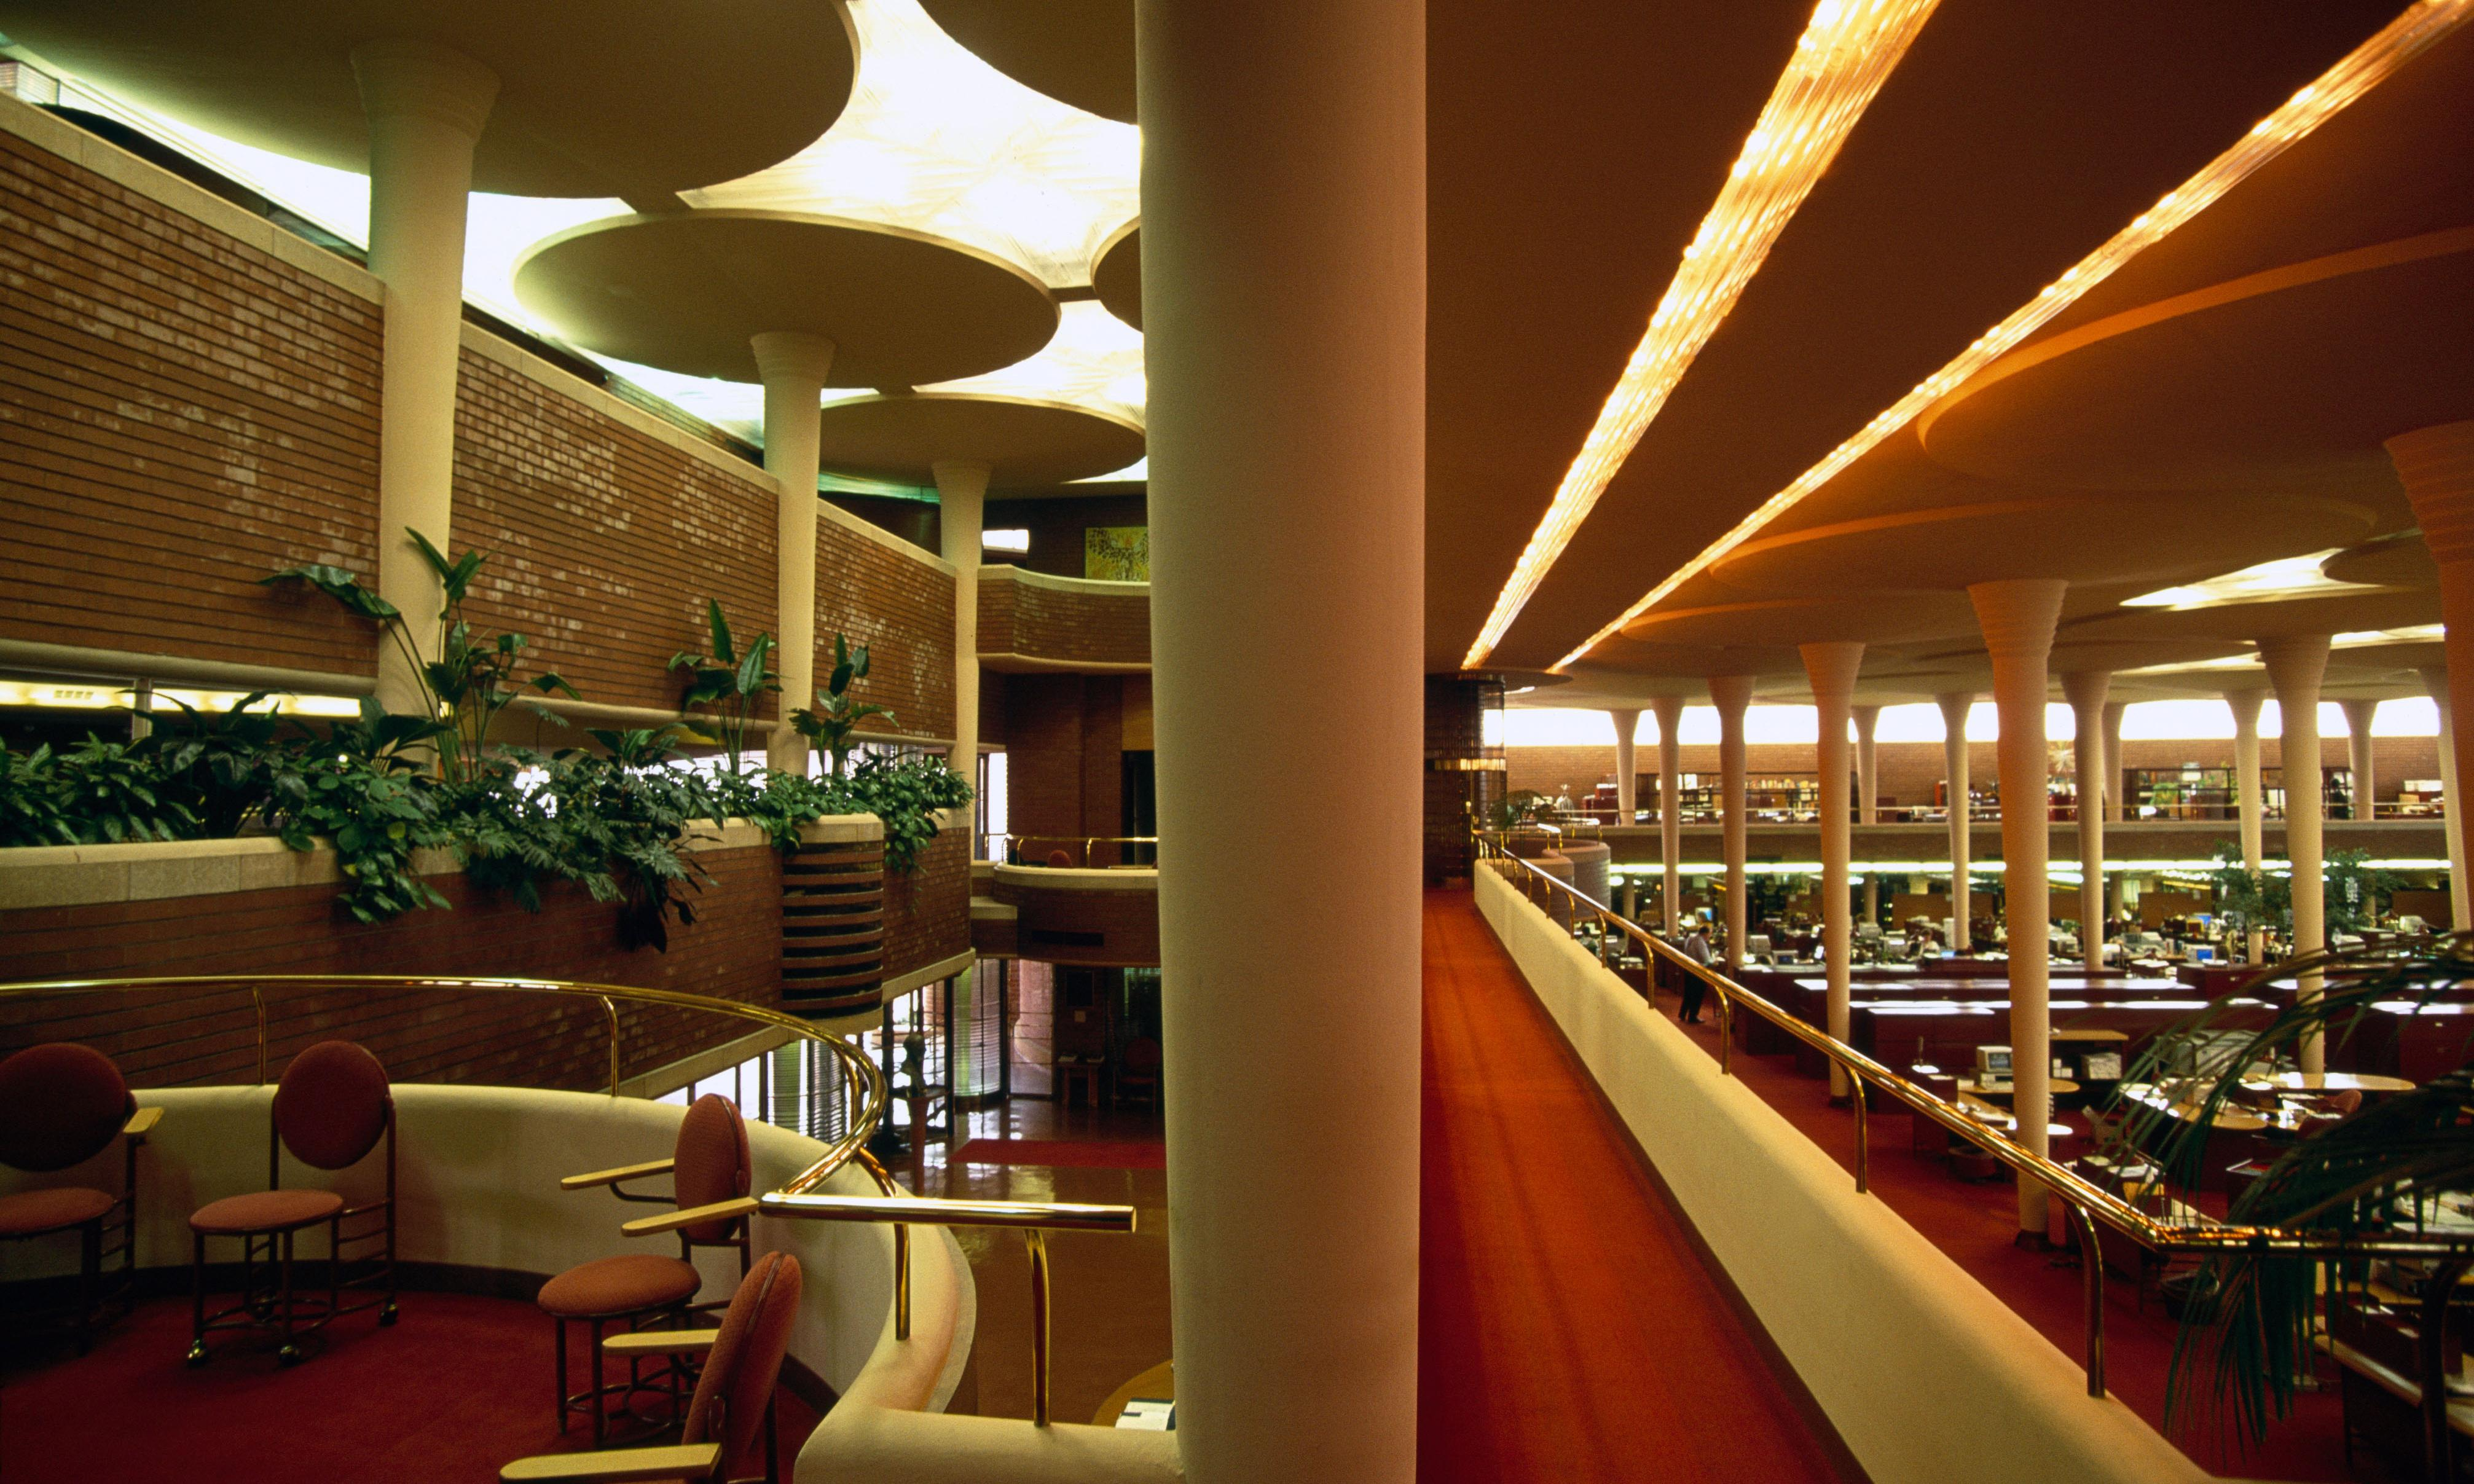 Daniel Libeskind: 'Frank Lloyd Wright inspired me to go beyond the obvious'